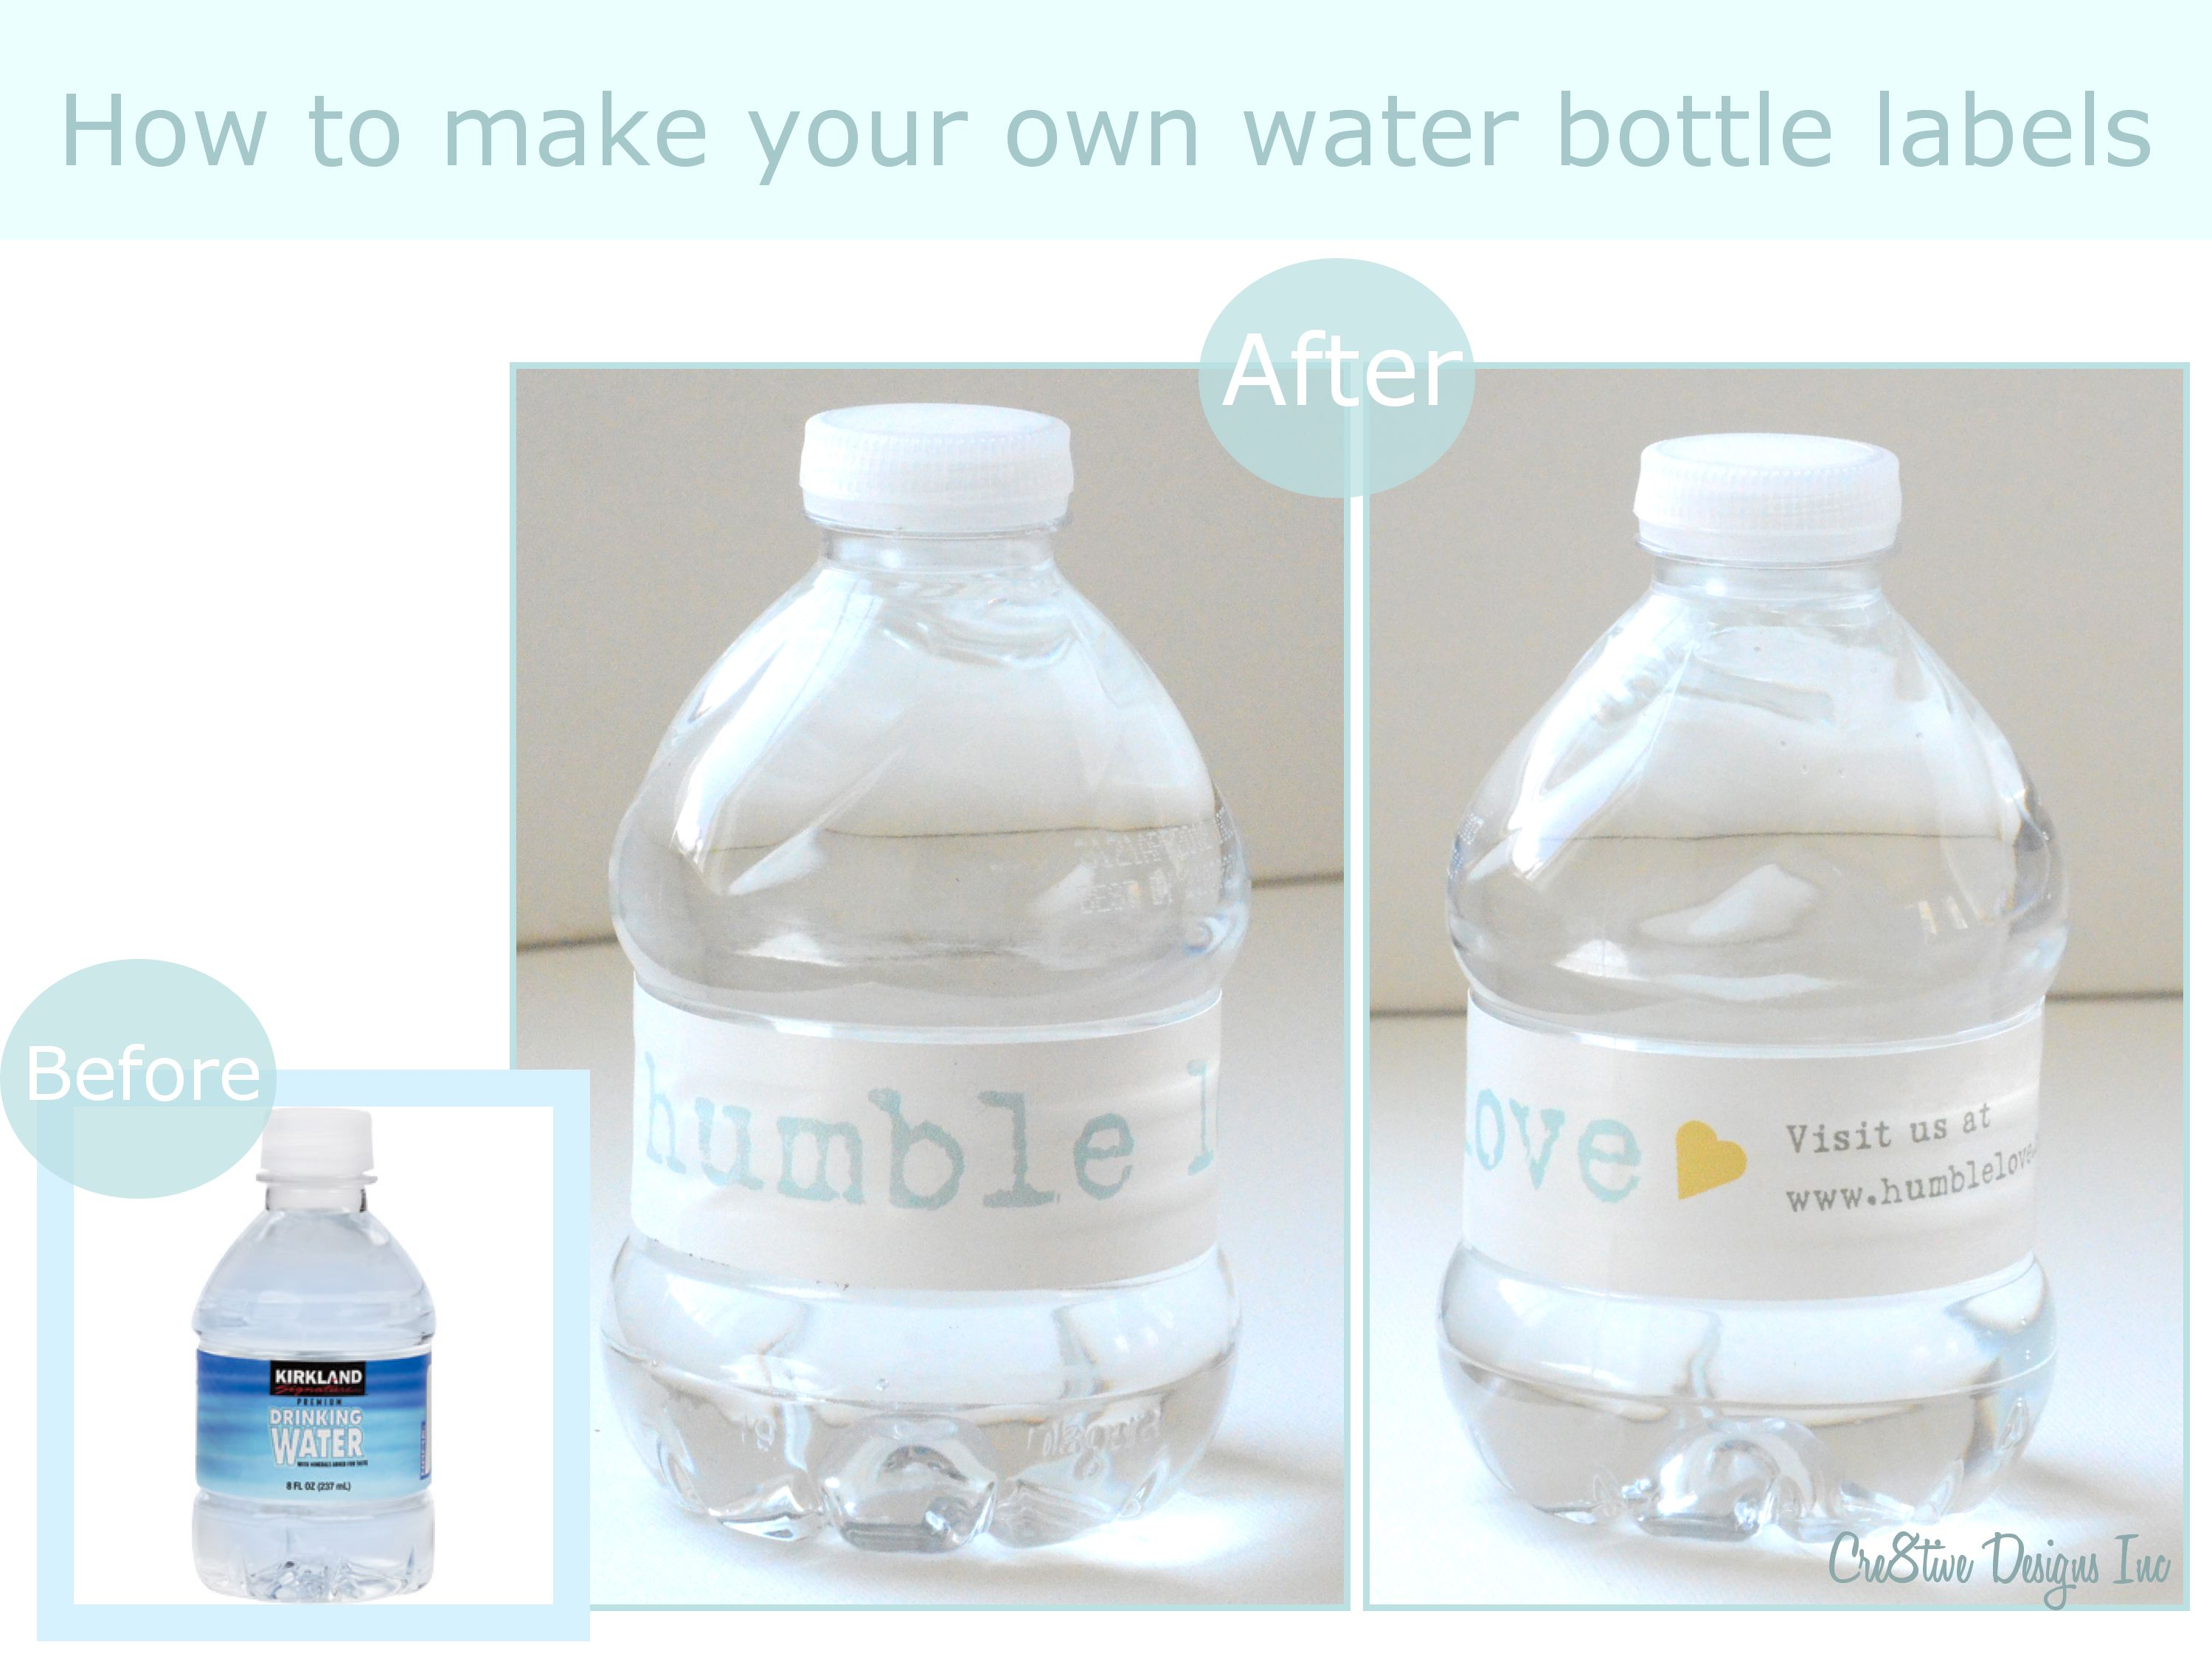 How to make water bottle labels - Cre8tive Designs Inc.